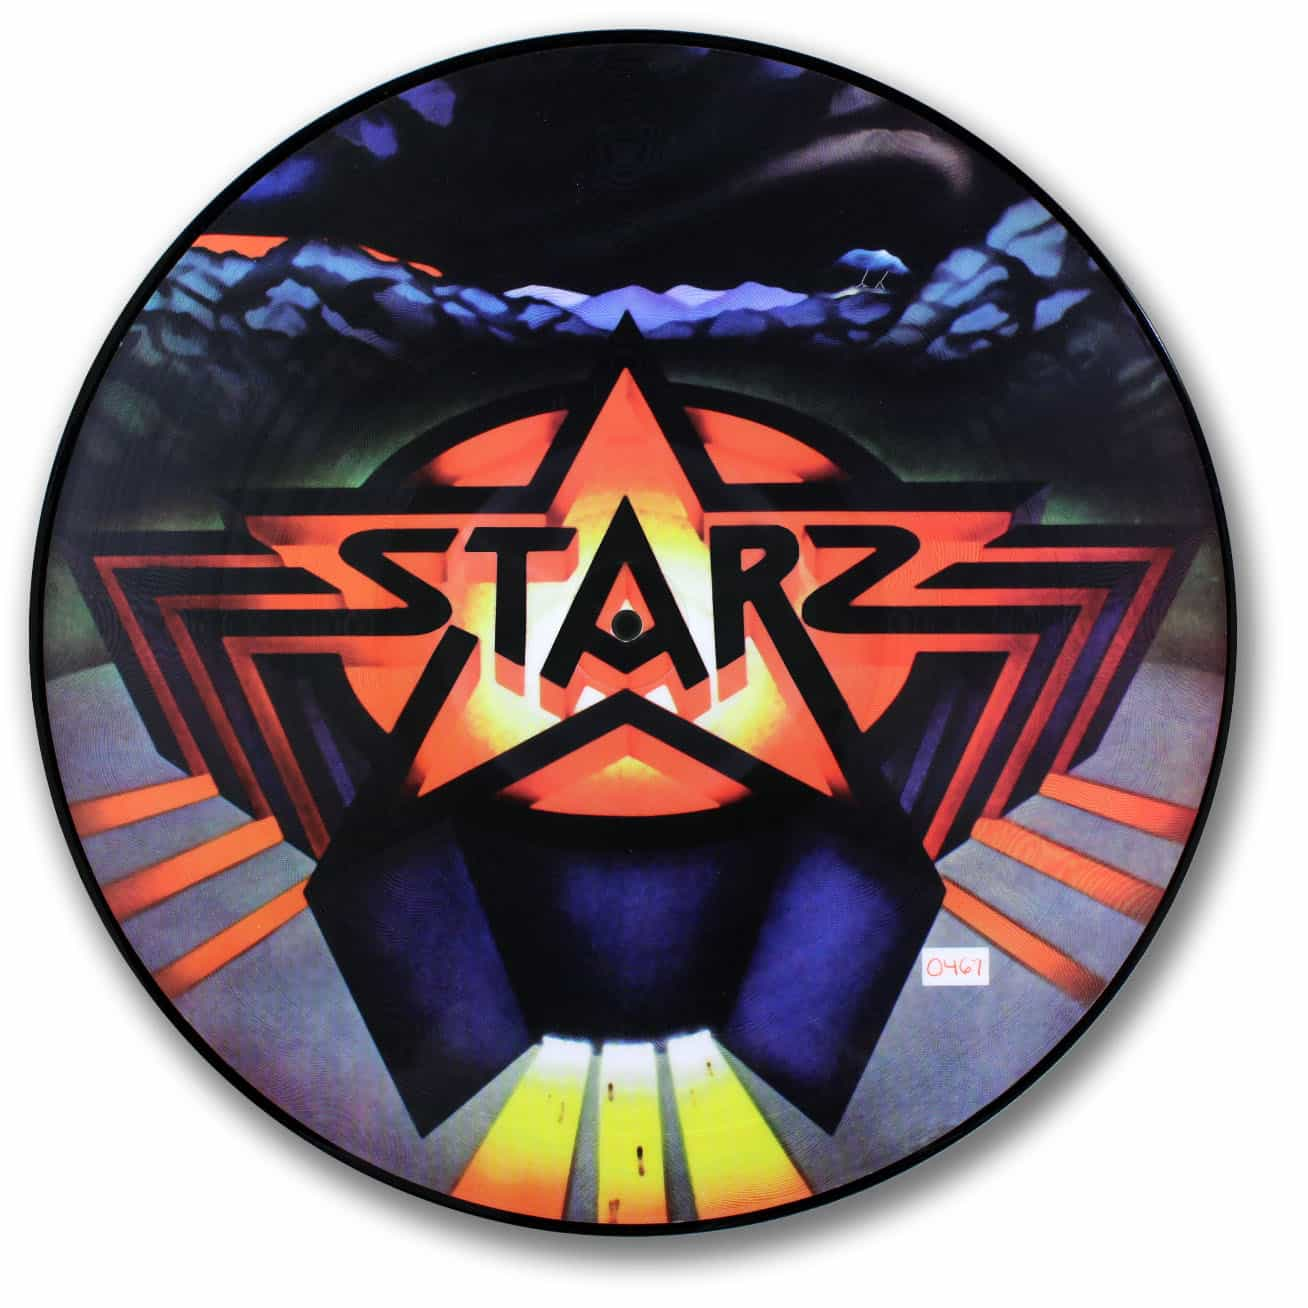 Starz-Richie Ranno Group Picture Disc